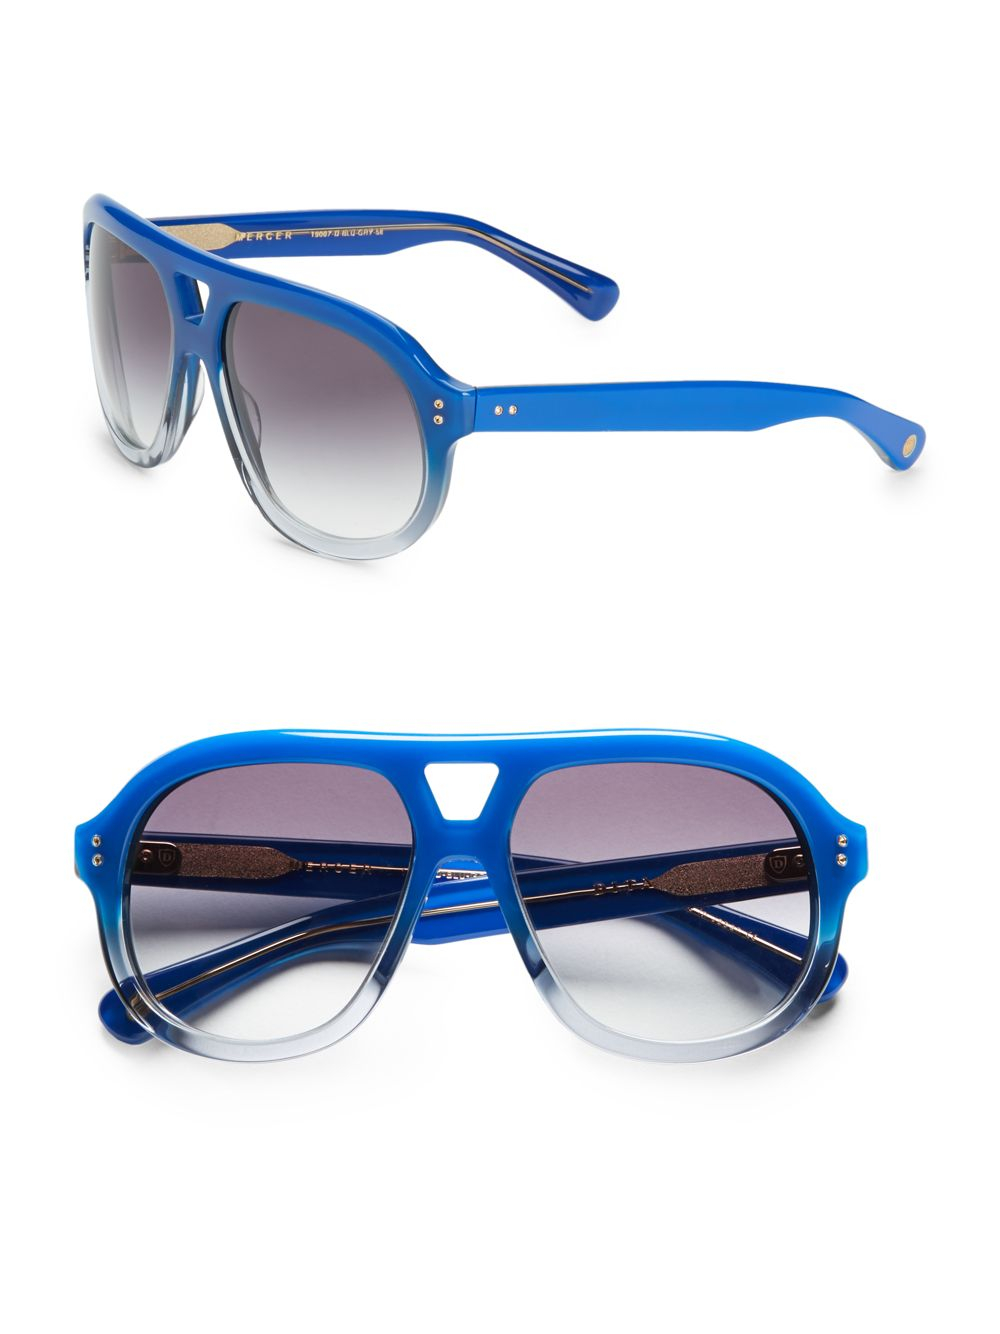 Dita eyewear Mercer Two-tone Aviator Sunglasses in Blue ... Dita Eyewear